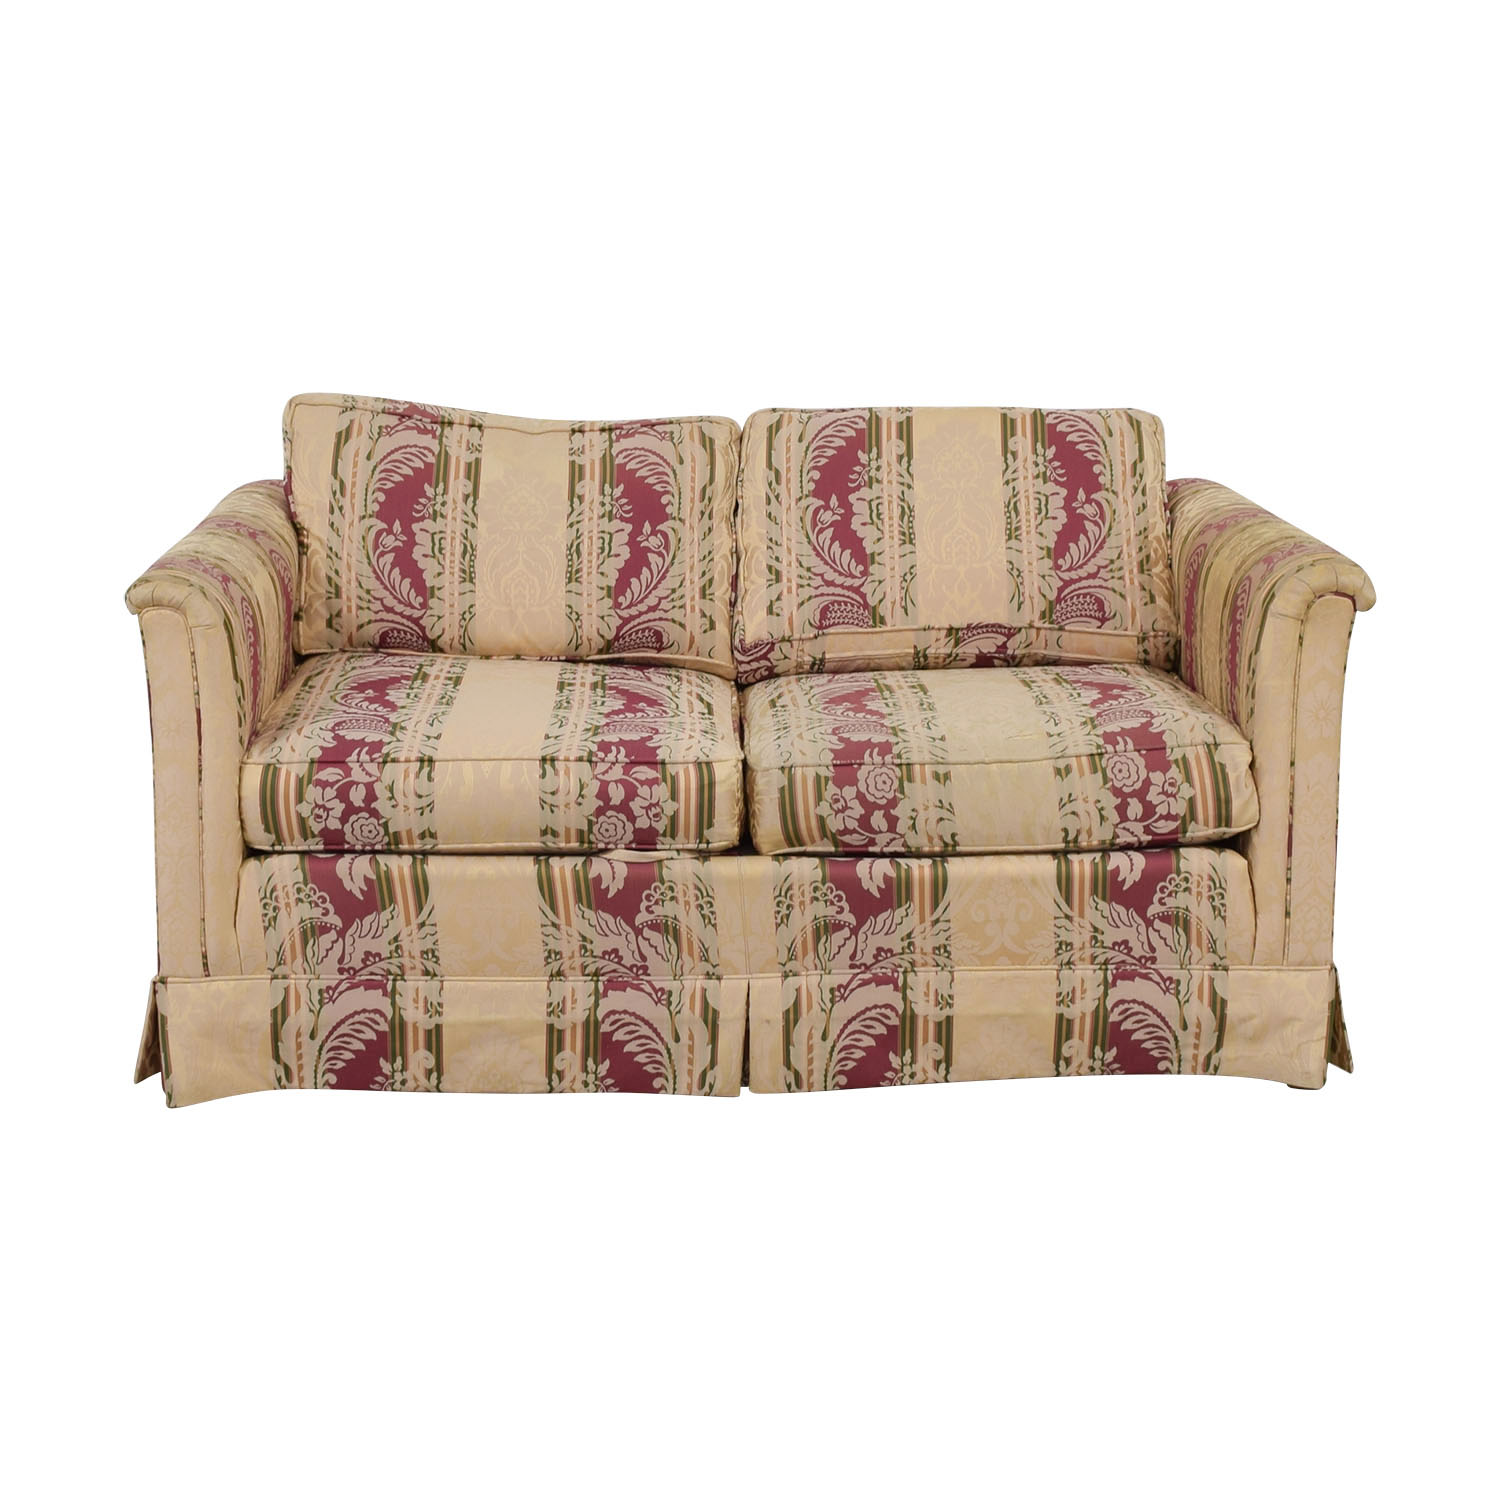 Drexel Heritage Drexel Heritage Yellow and Red Multi Color Loveseat nj